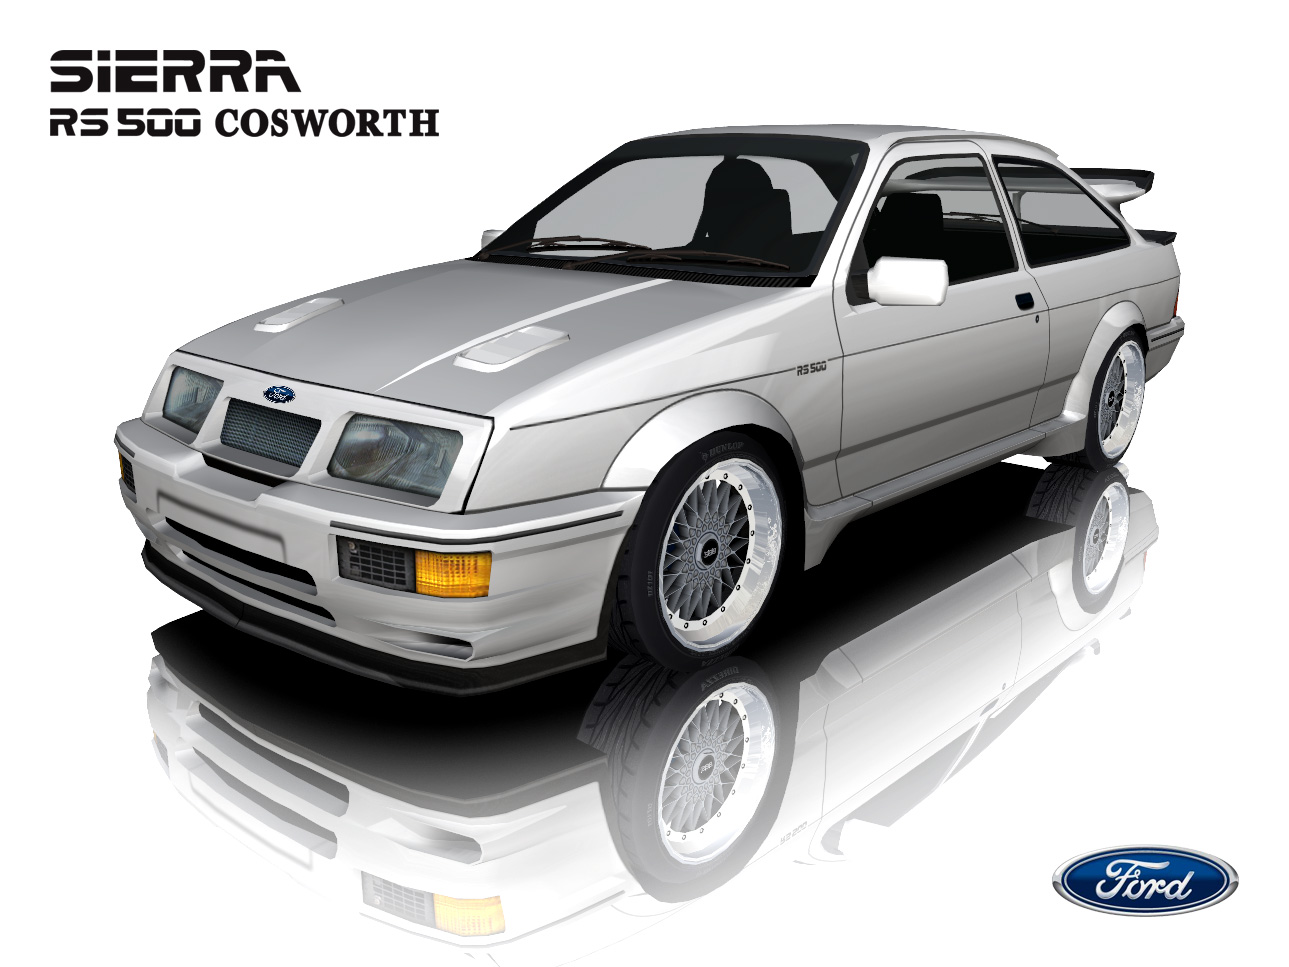 ford sierra rs500 cosworth picture 8 reviews news specs buy car. Black Bedroom Furniture Sets. Home Design Ideas